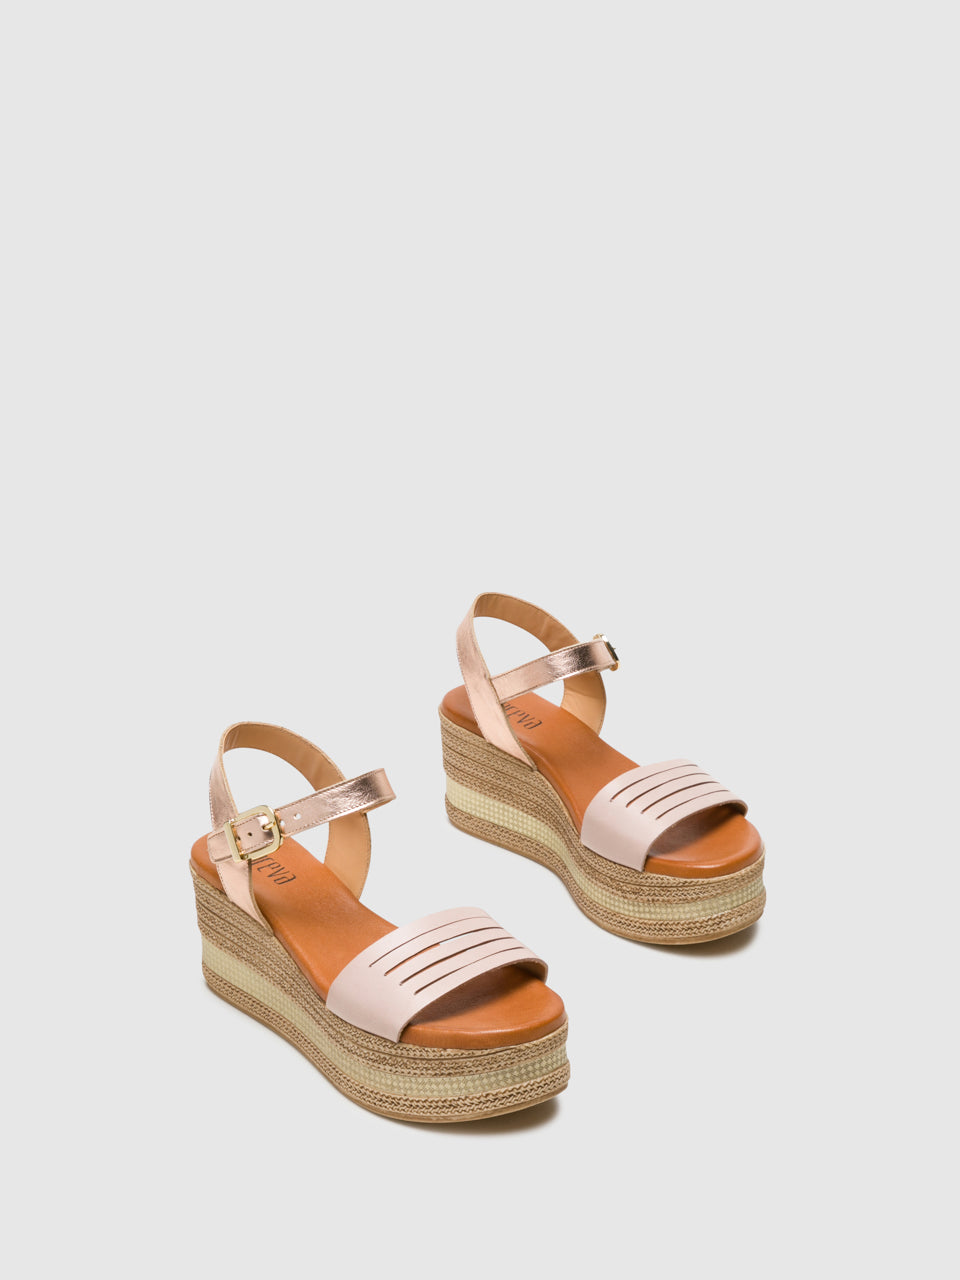 Foreva LightPink Buckle Sandals